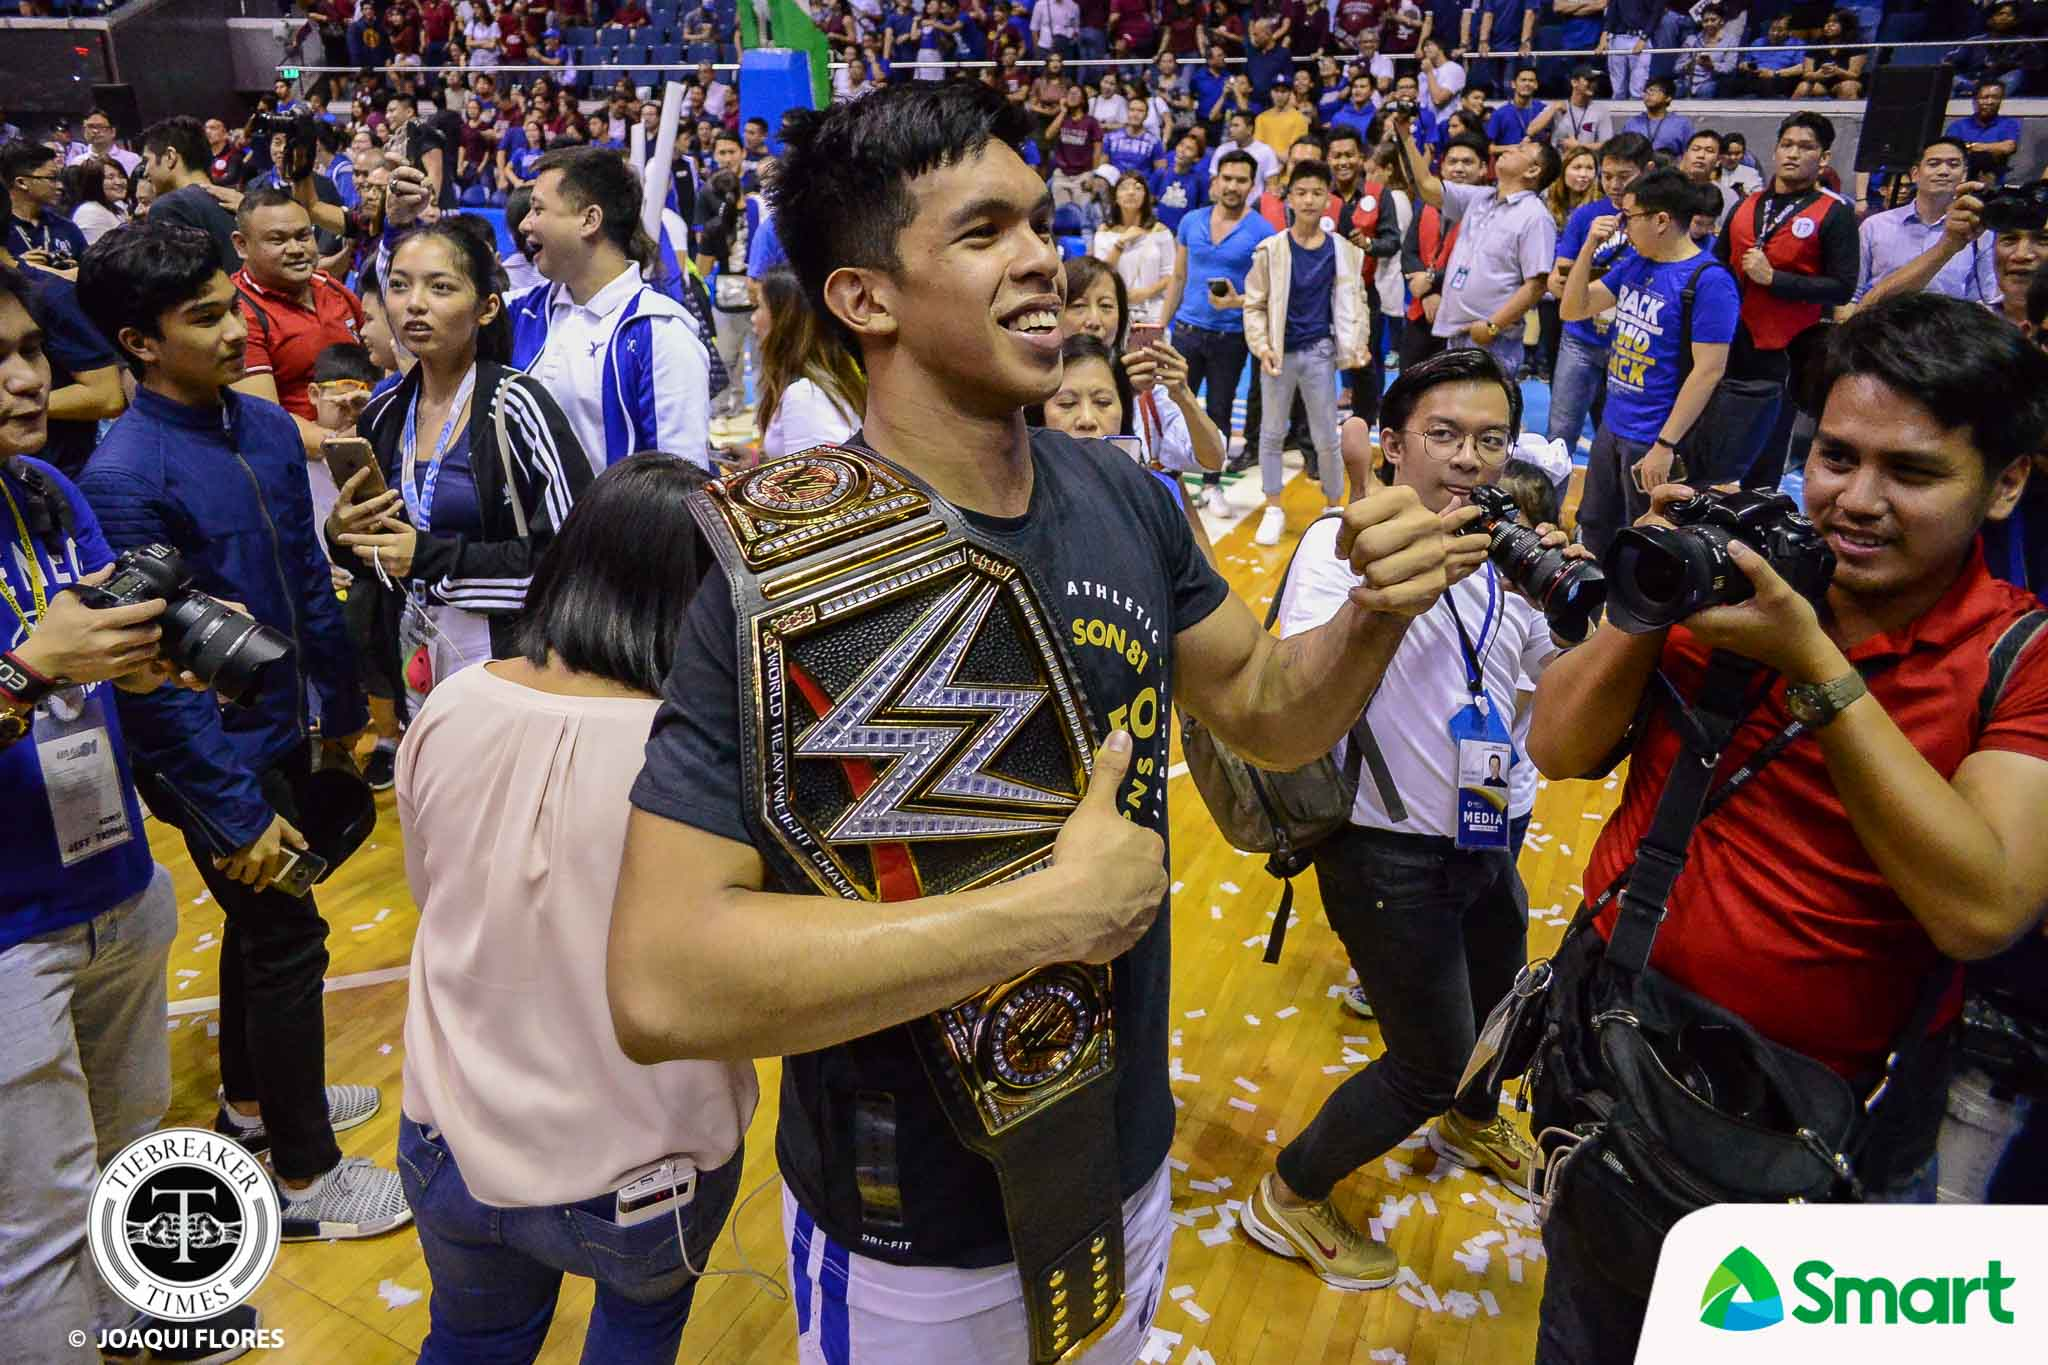 Tiebreaker Times Thirdy Ravena carries WWE belt during celebration ADMU Basketball News UAAP  UAAP Season 81 Men's Basketball UAAP Season 81 Thirdy Ravena Ateneo Men's Basketball